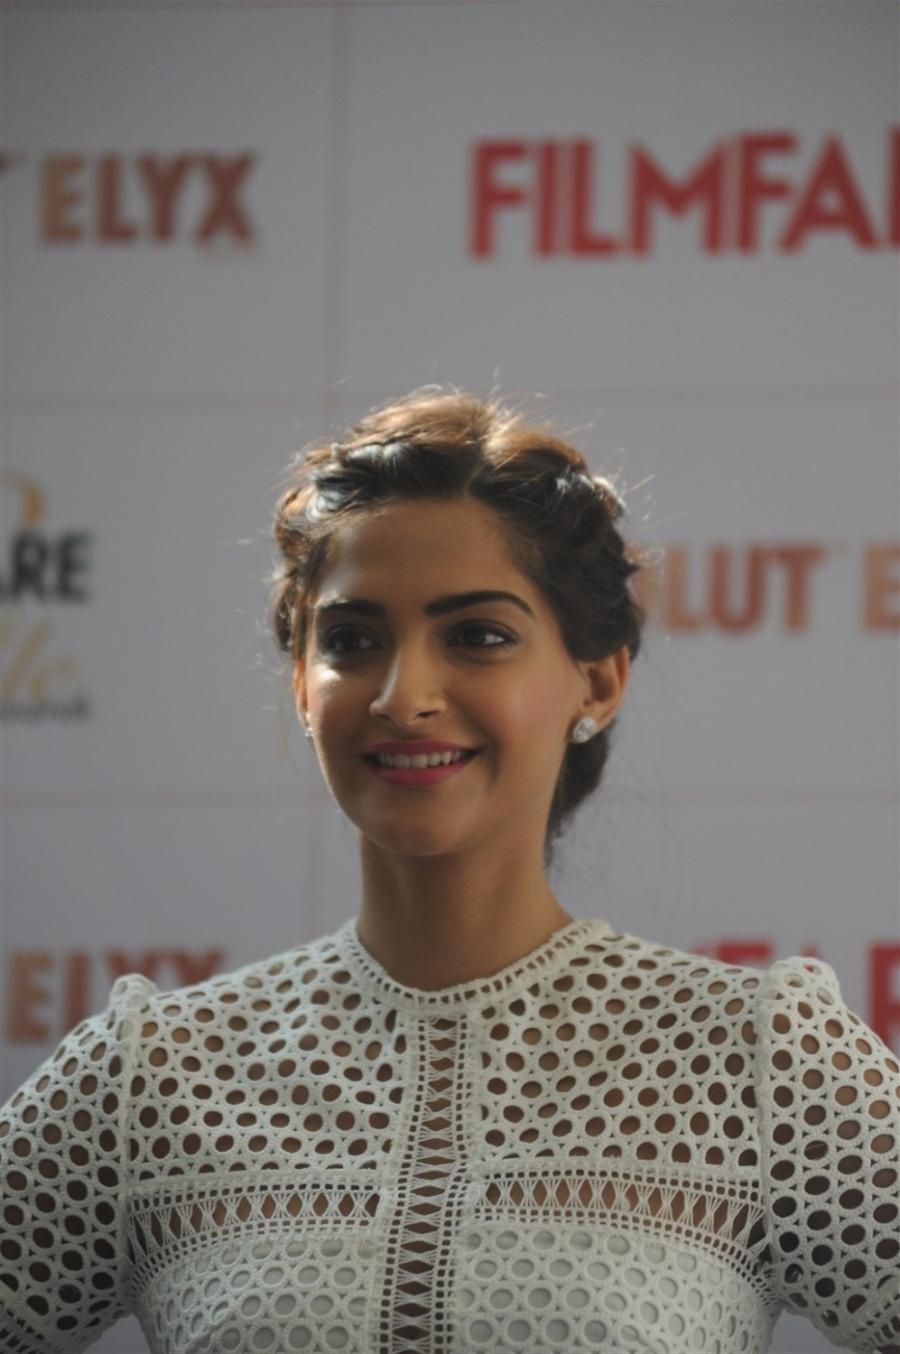 High Quality Bollywood Celebrity Pictures Sonam Kapoor -7248